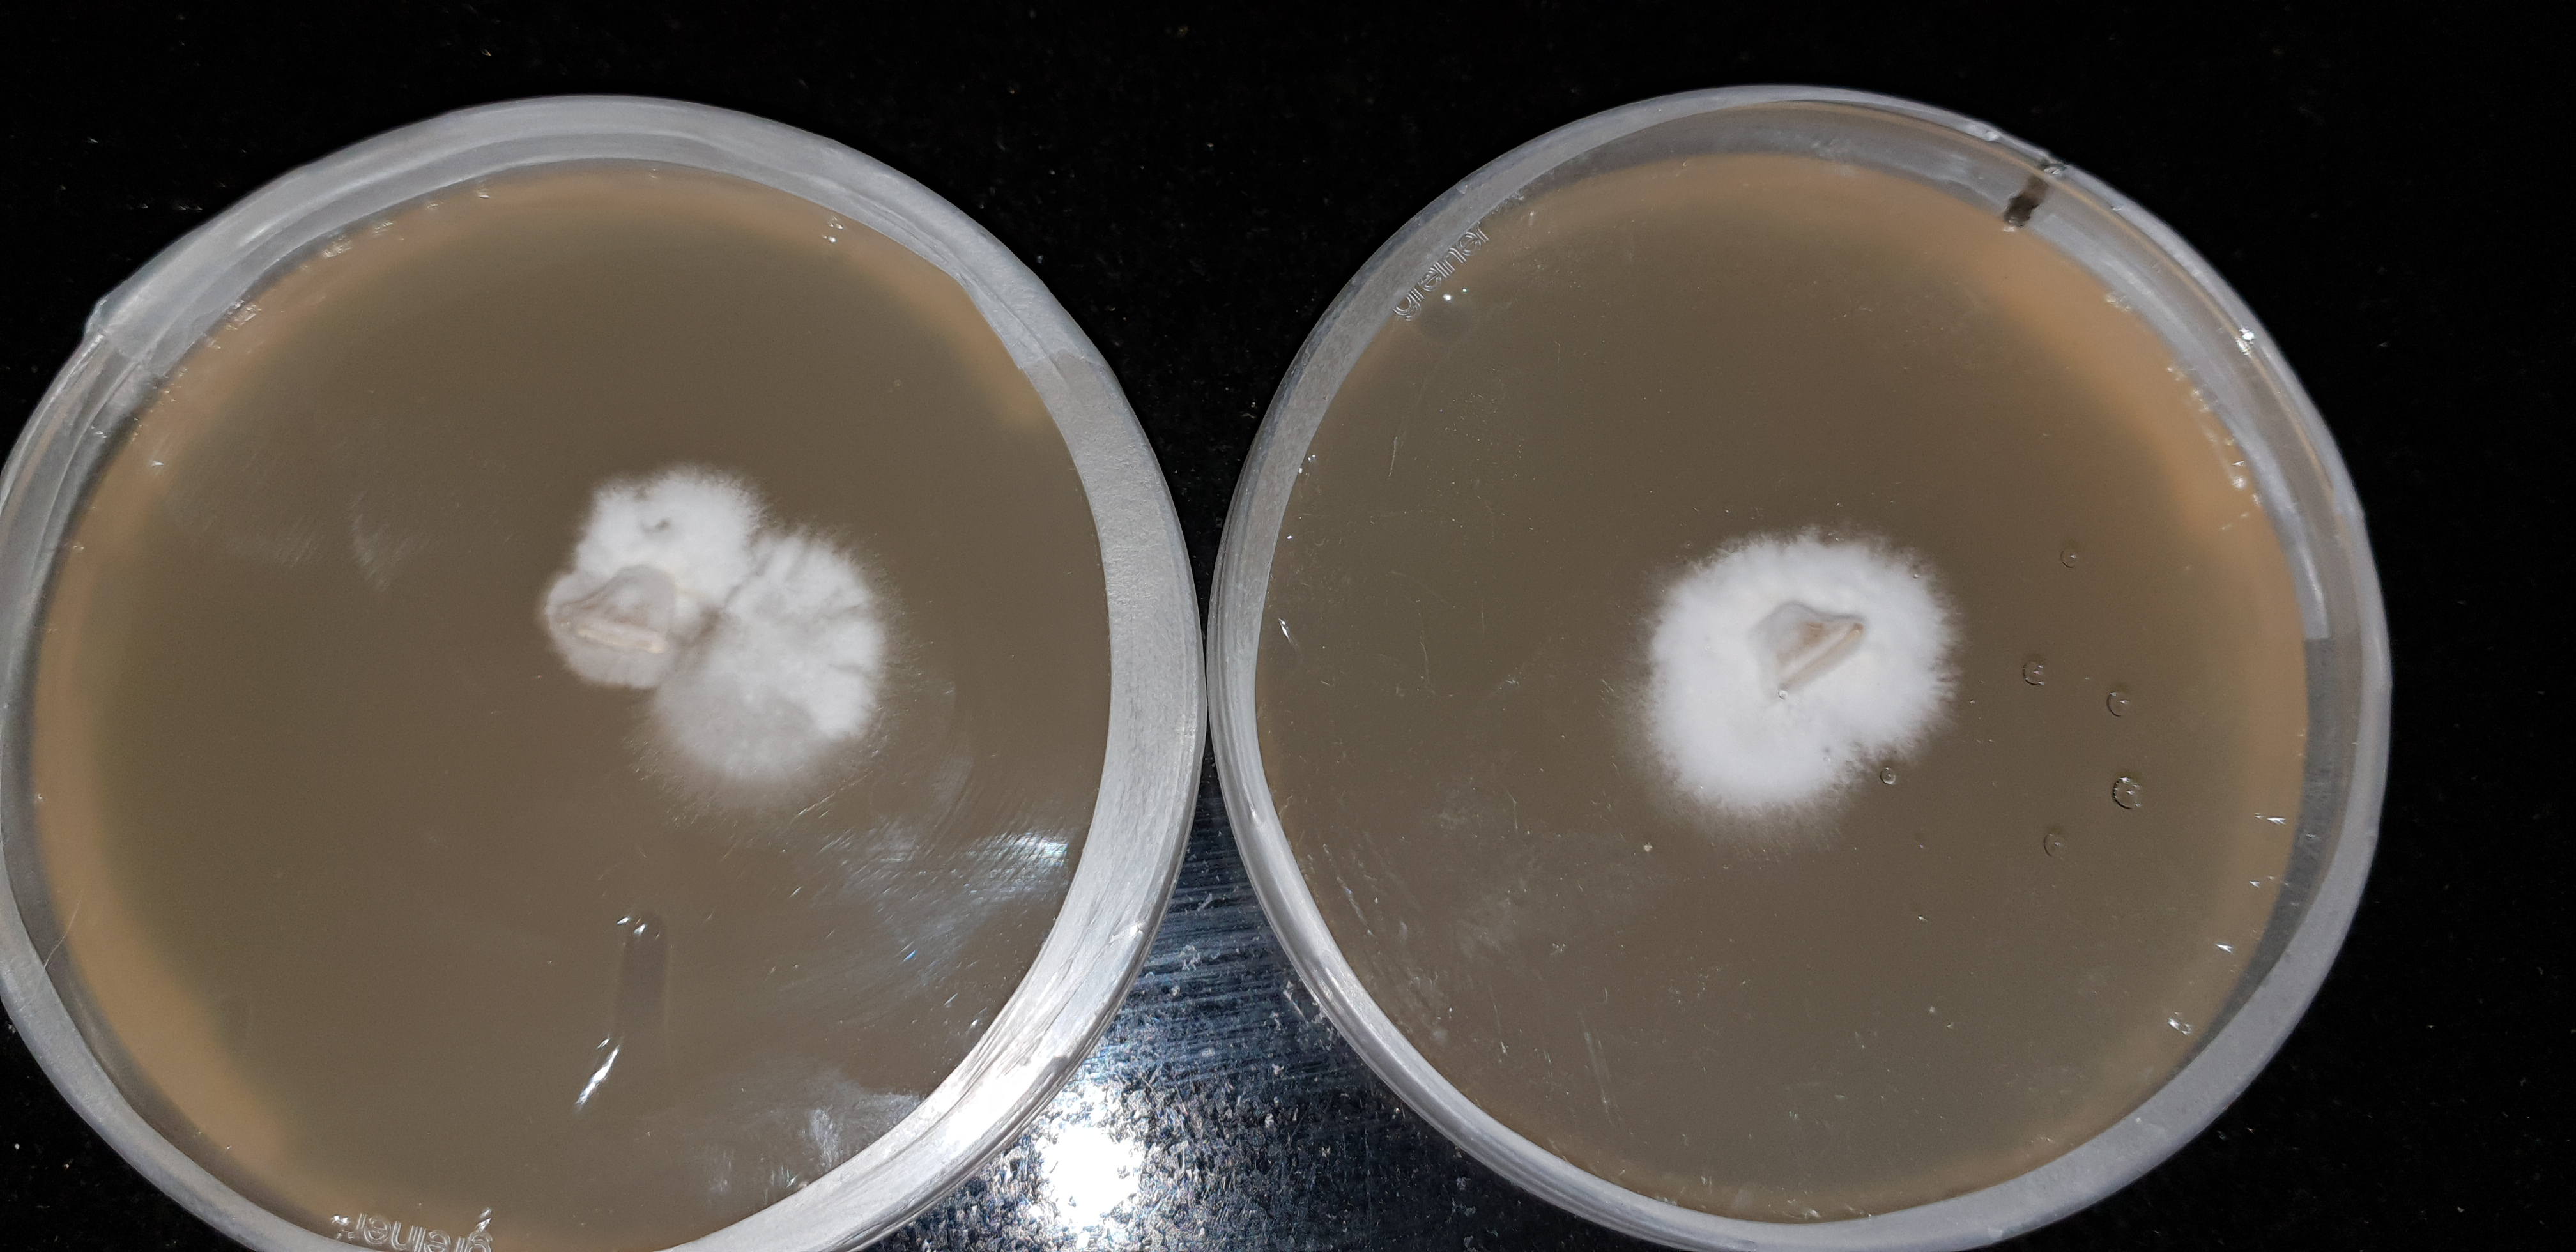 Ovoid Spore to Agar first transfer